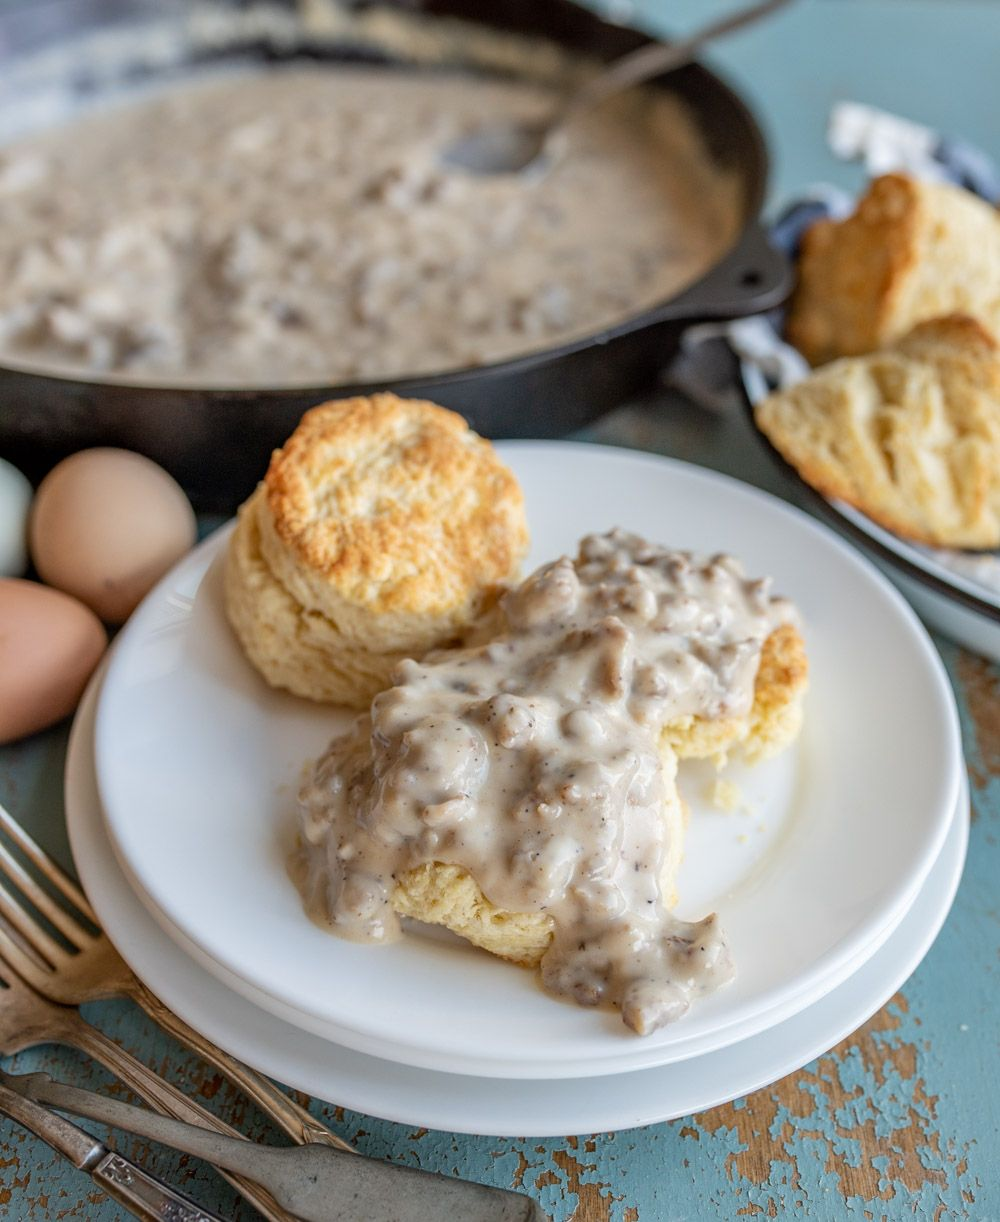 Homemade Biscuits And Gravy Recipe Homemade Biscuits Sausage Gravy Best Homemade Biscuits